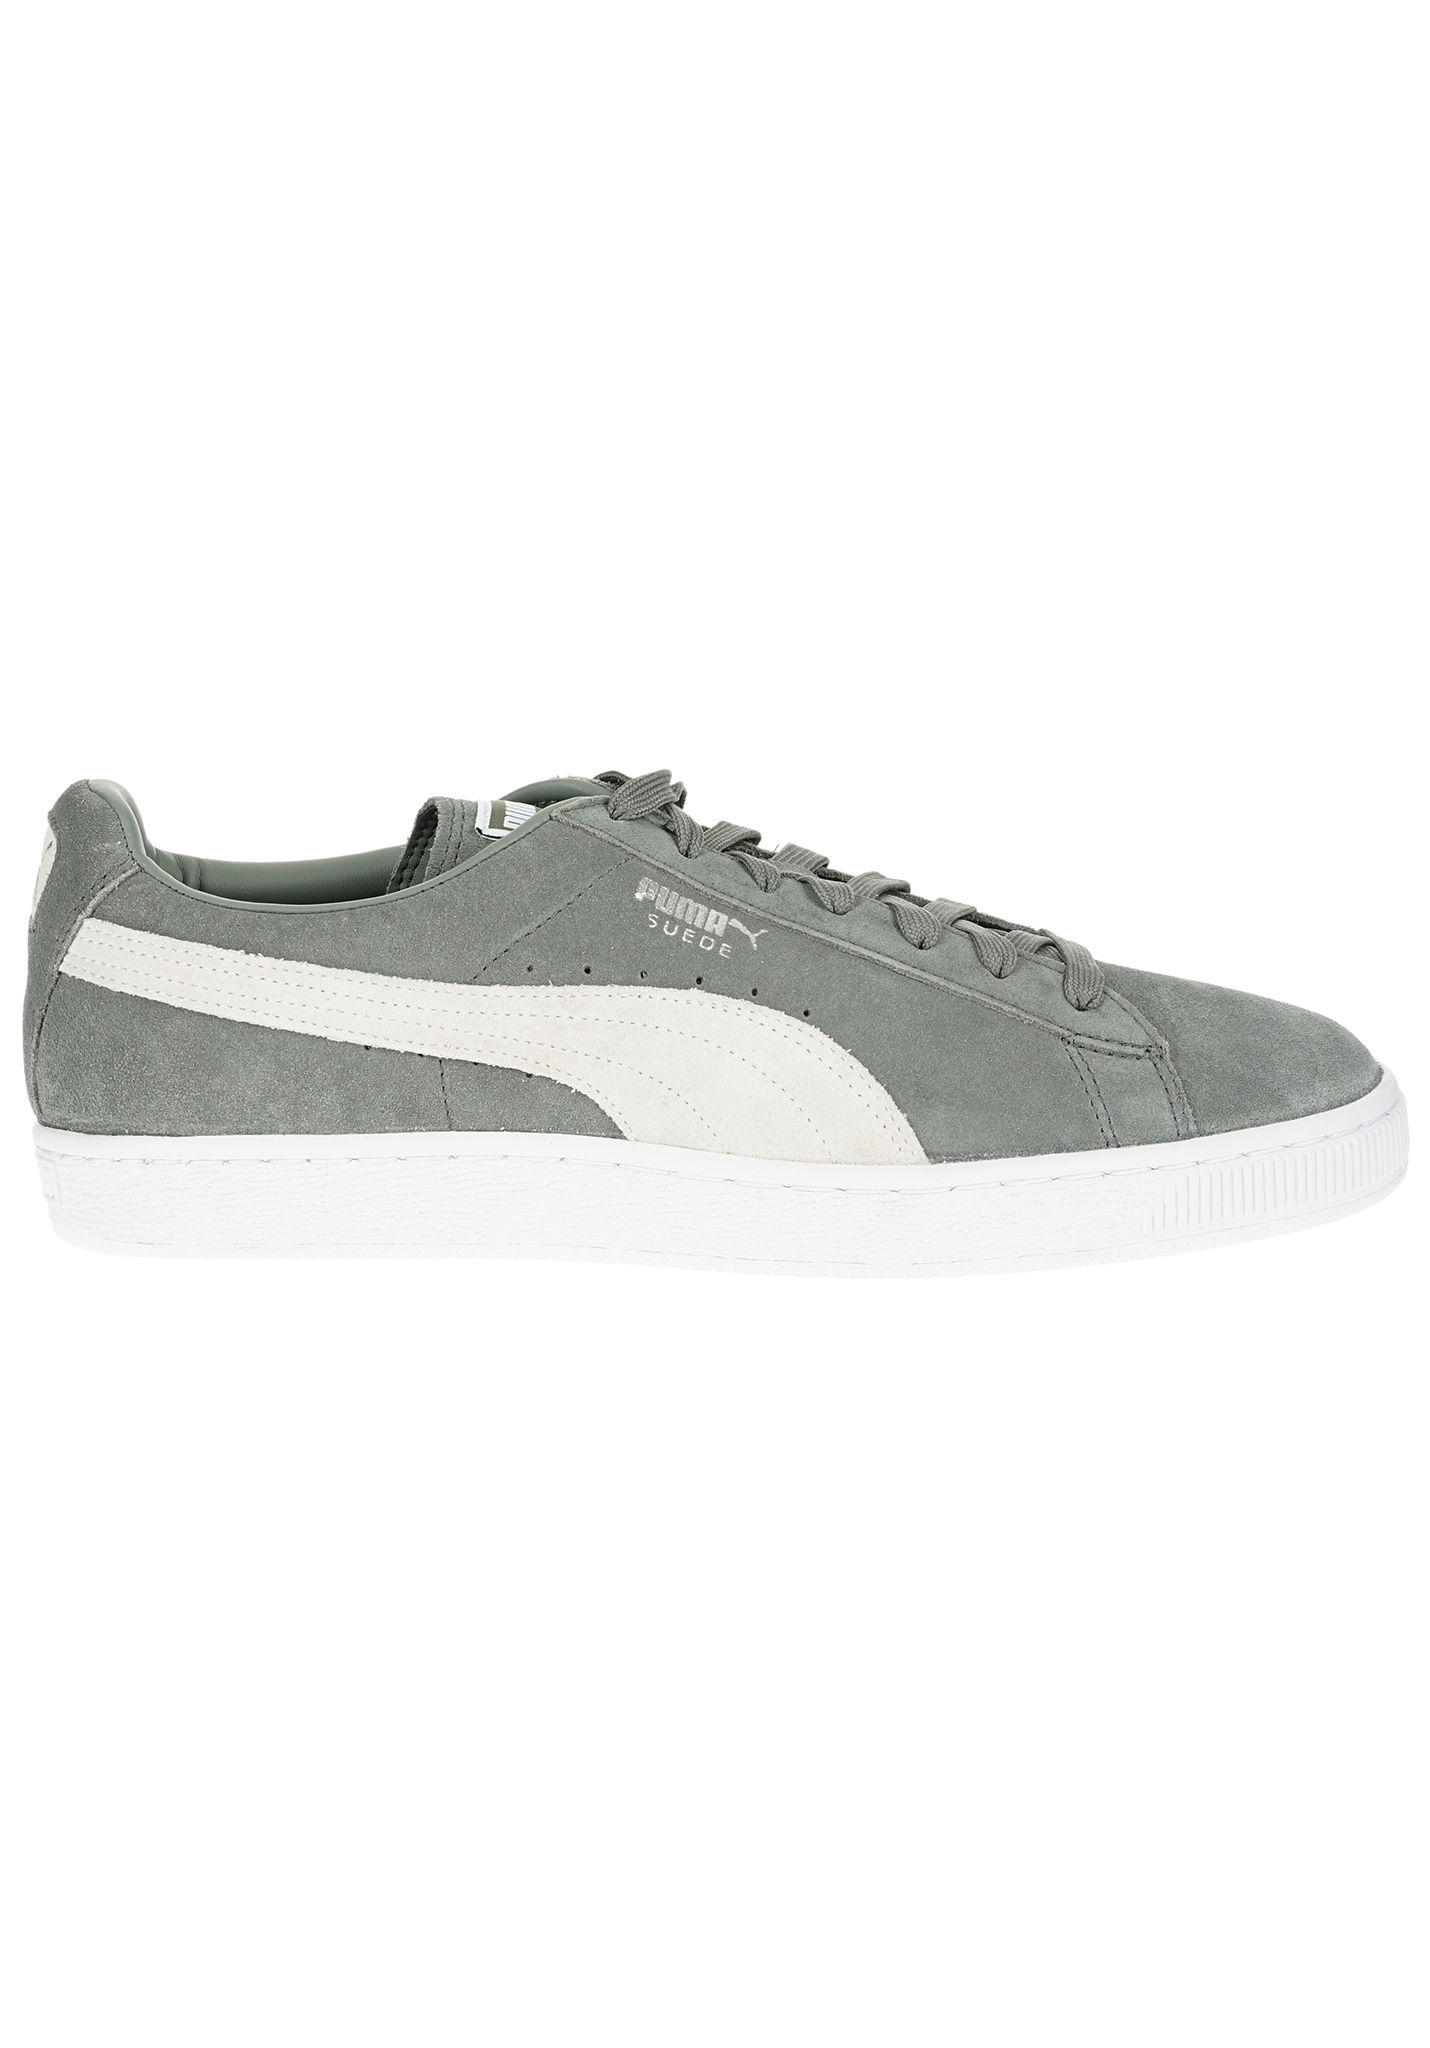 6620523846c Puma Suede Classic + - Sneakers - Groen - Planet Sports